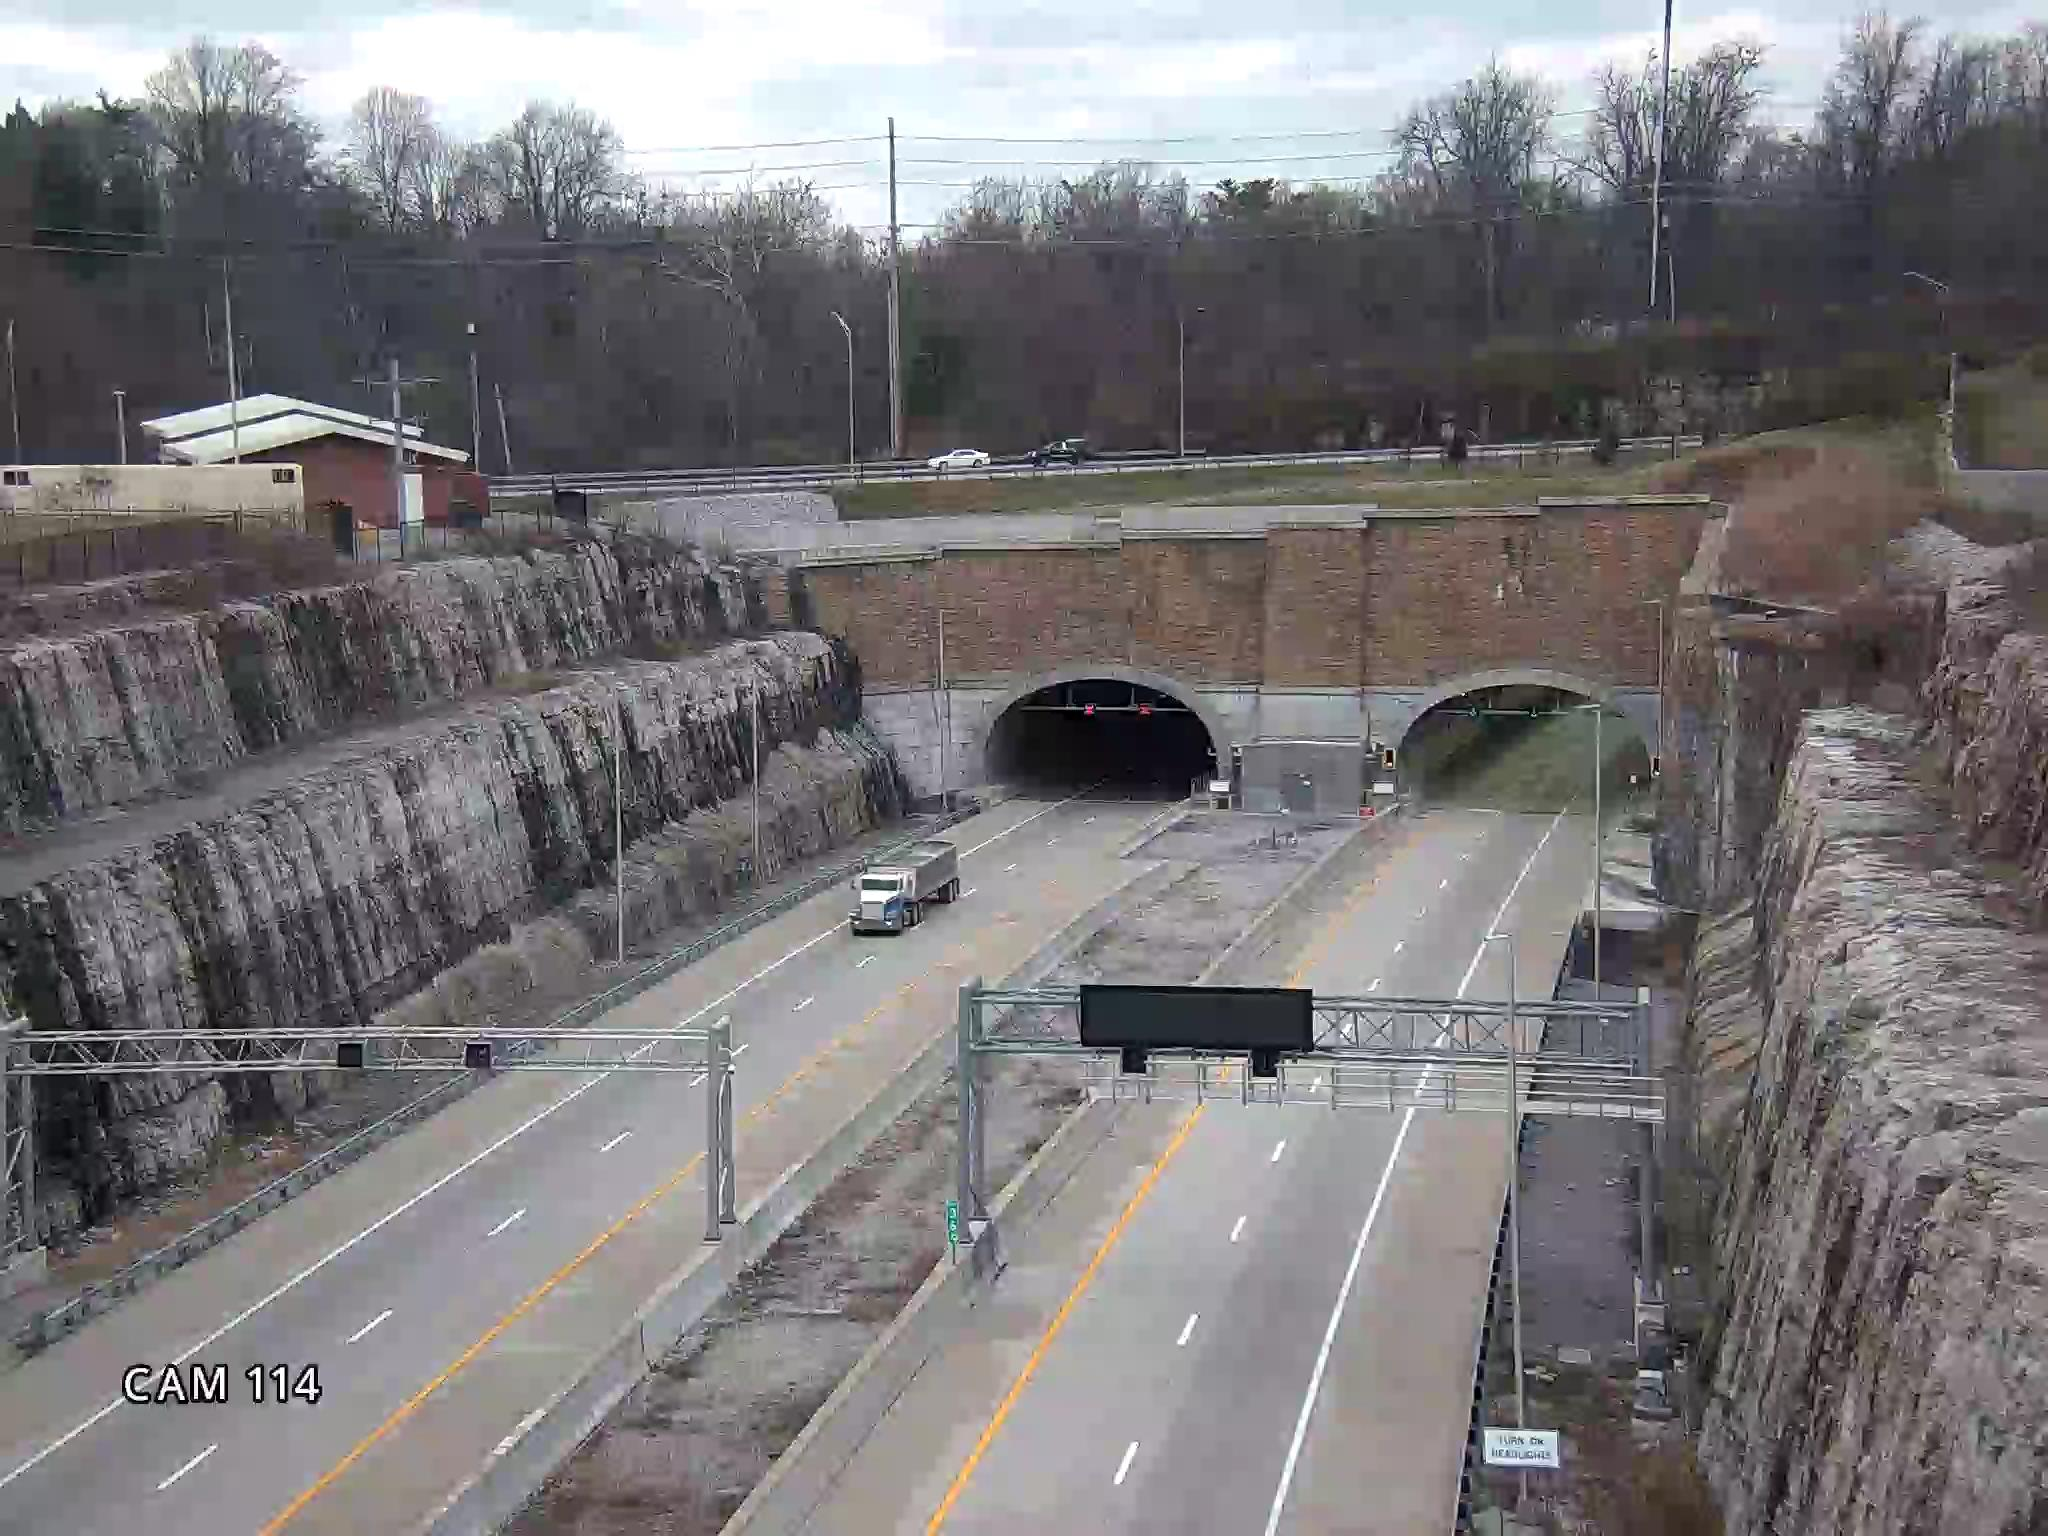 KY841 at tunnel entrance (North)  (342)  - Kentucky